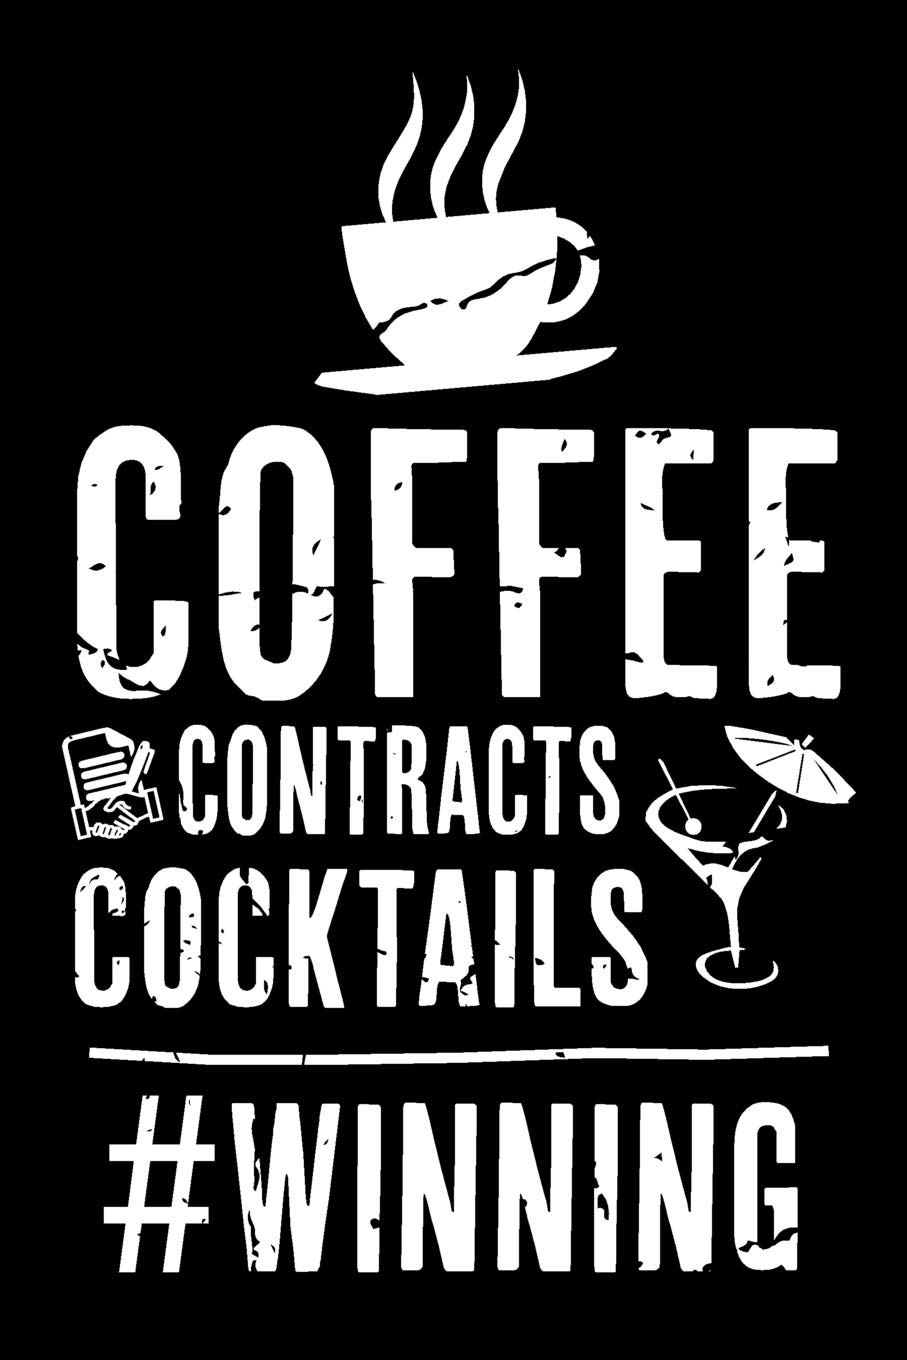 Coffee Contracts Cocktails Winning Real Estate Humor Comical Quote For Real Estate Brokers Agents And Other Professionals Real Estate Bizzy Trends 9781793331724 Amazon Com Books